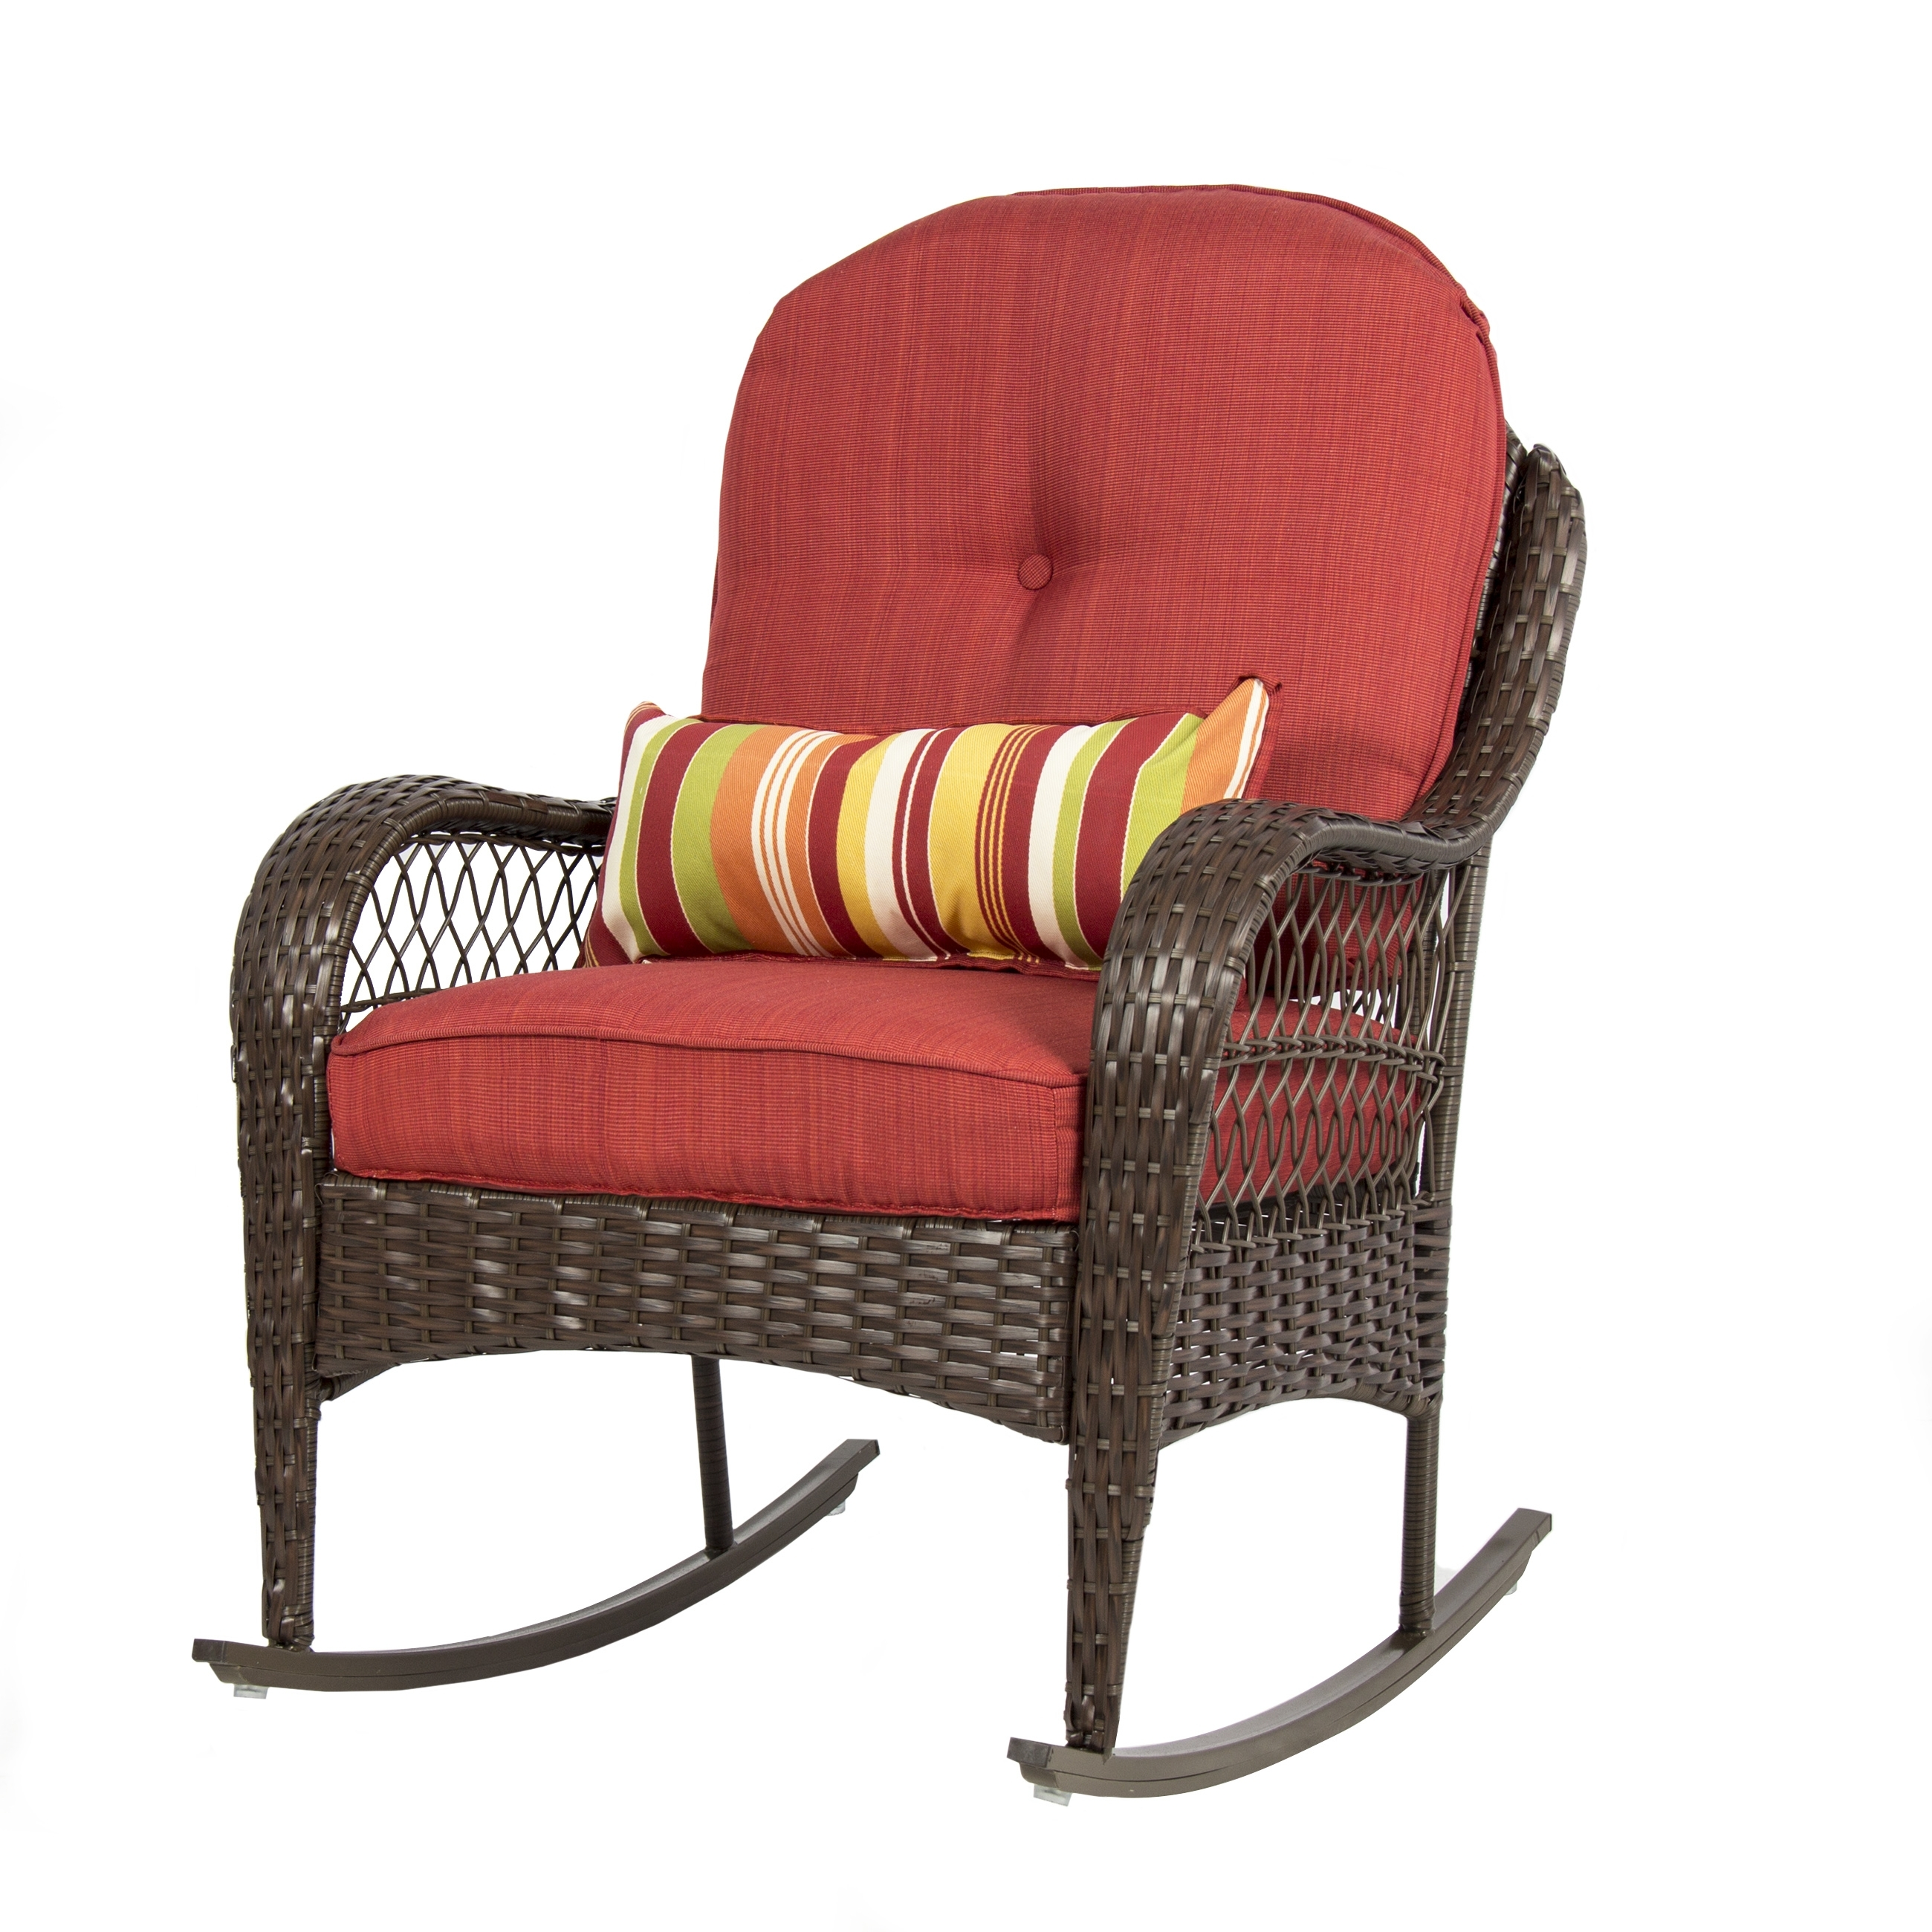 Most Recently Released Best Choice Products Wicker Rocking Chair Patio Porch Deck Furniture Regarding Walmart Rocking Chairs (View 5 of 15)